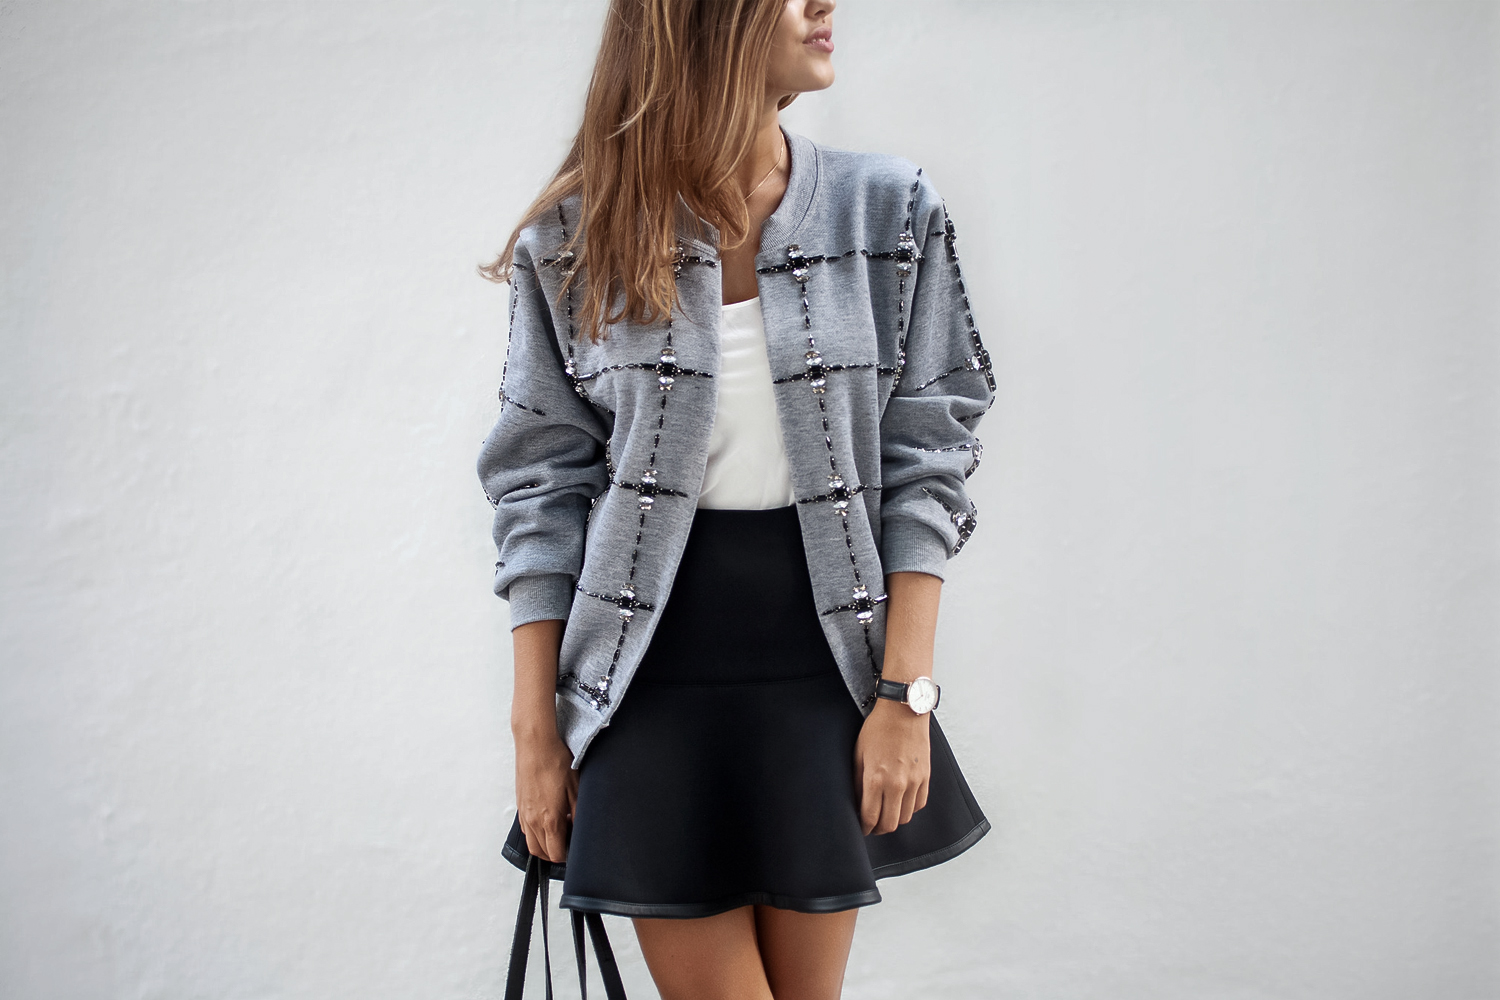 an unudentified women in a handmade bomber jacket and skirt on a plain background